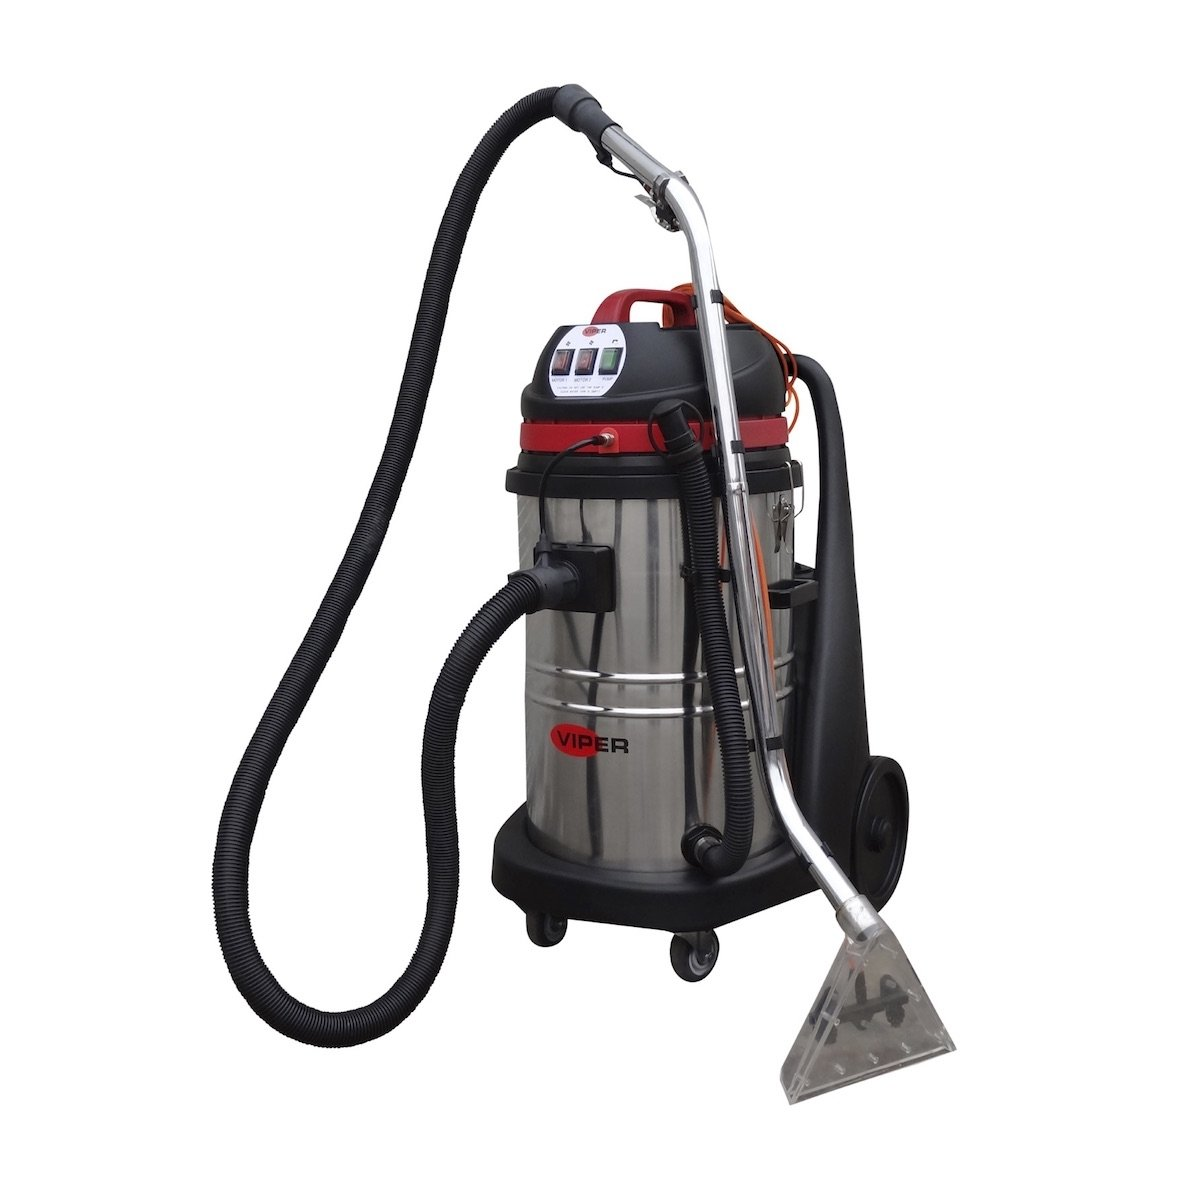 Viper Car 275 Cleaning Machine Uk Cleaning Supplies